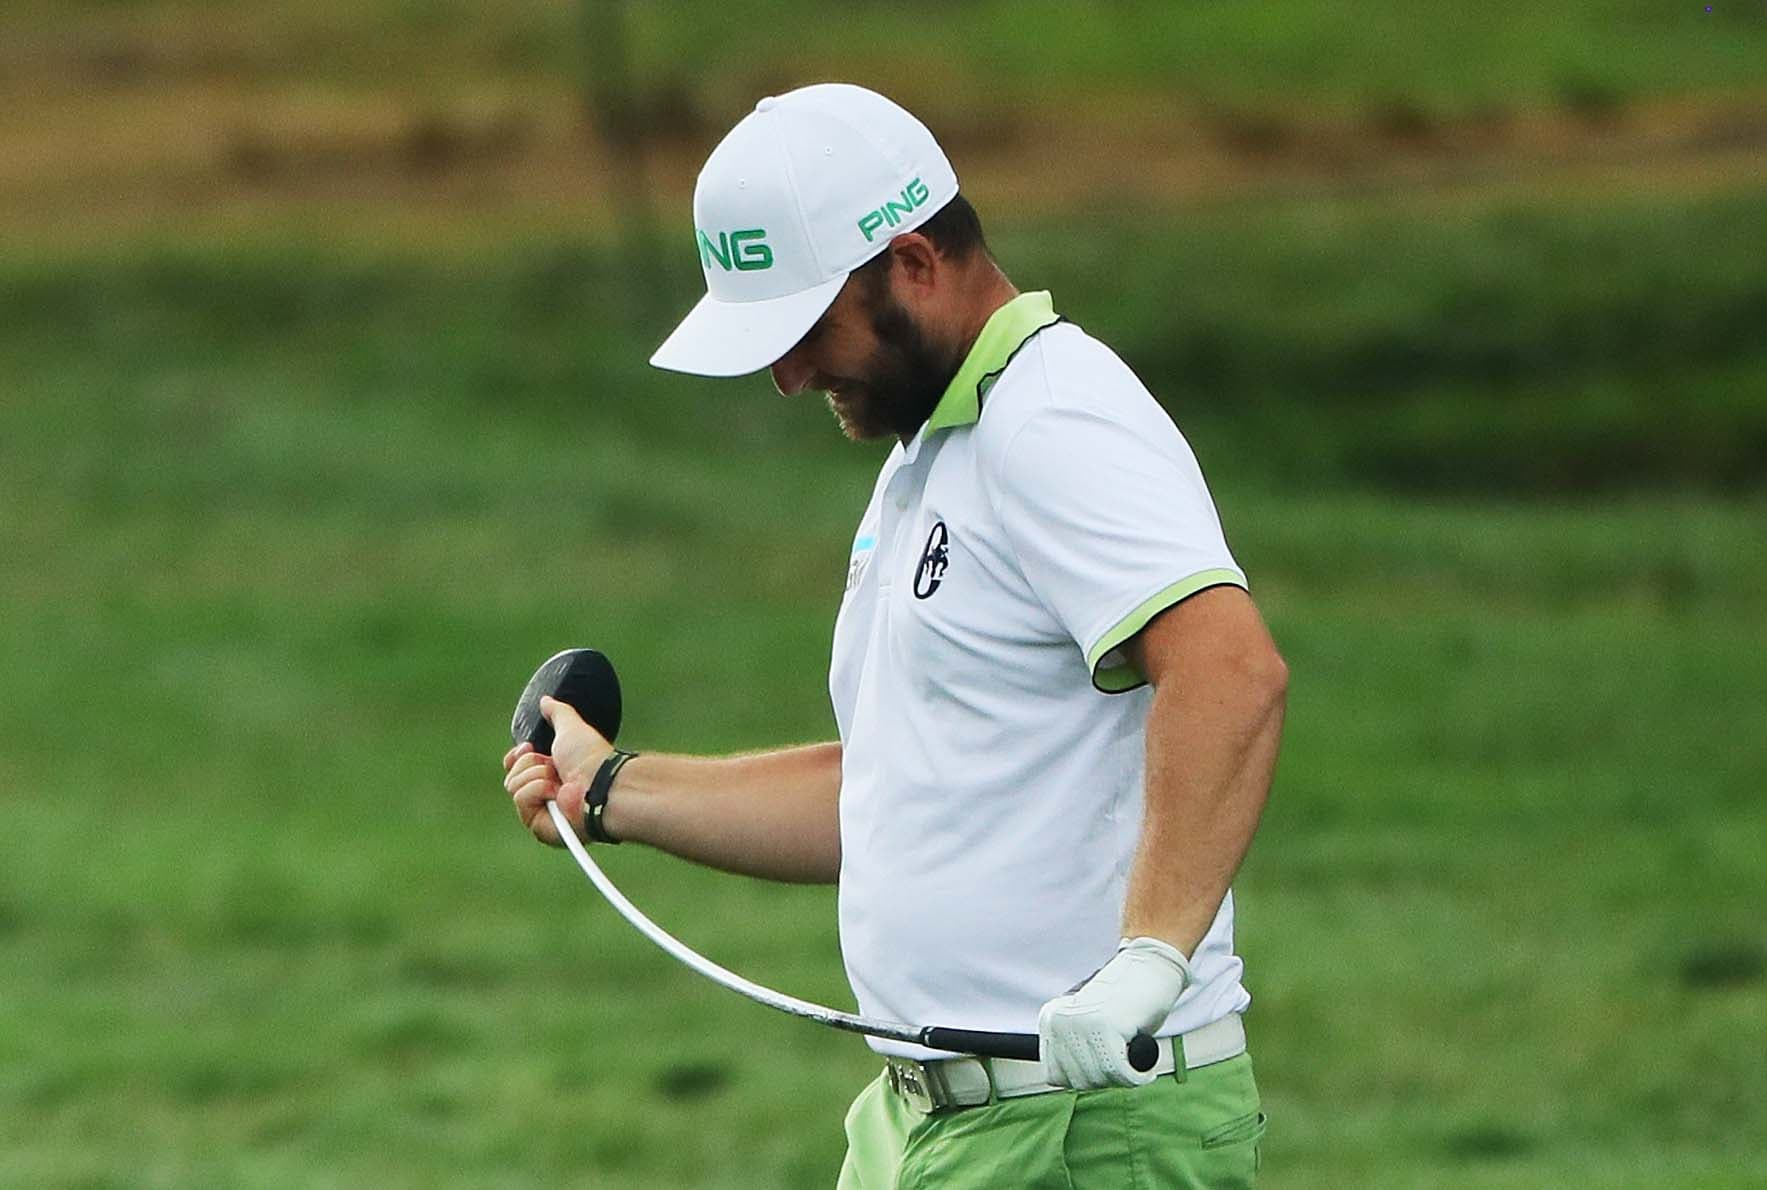 'I can't believe that equipment guy put a ladies shaft in my driver'